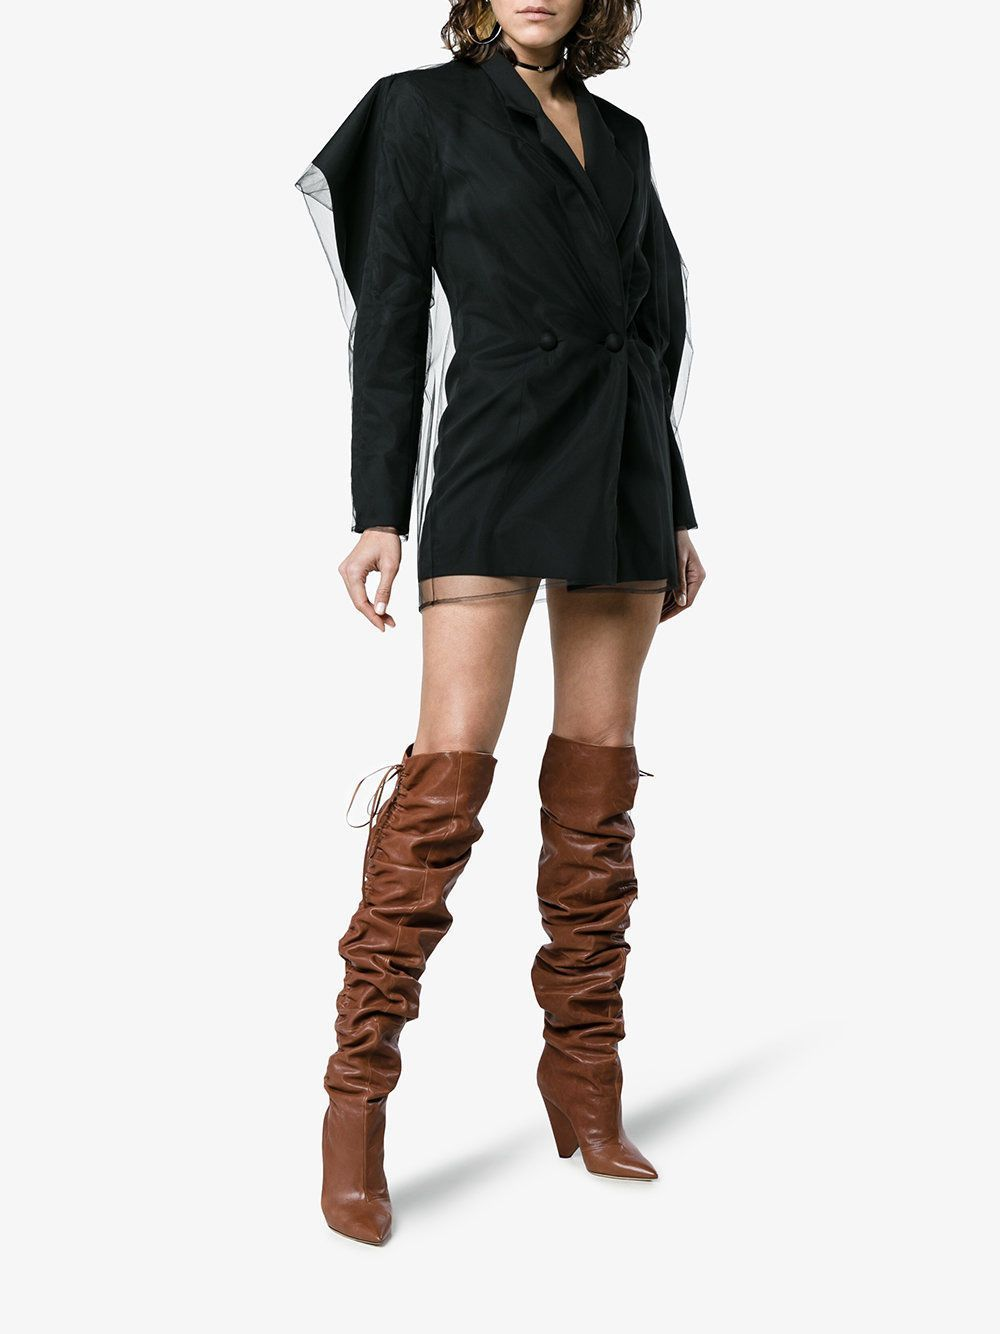 26c8fe707f8 YSL Saint Laurent Niki 105 Leather Thigh High Boots - RunwayCatalog.com